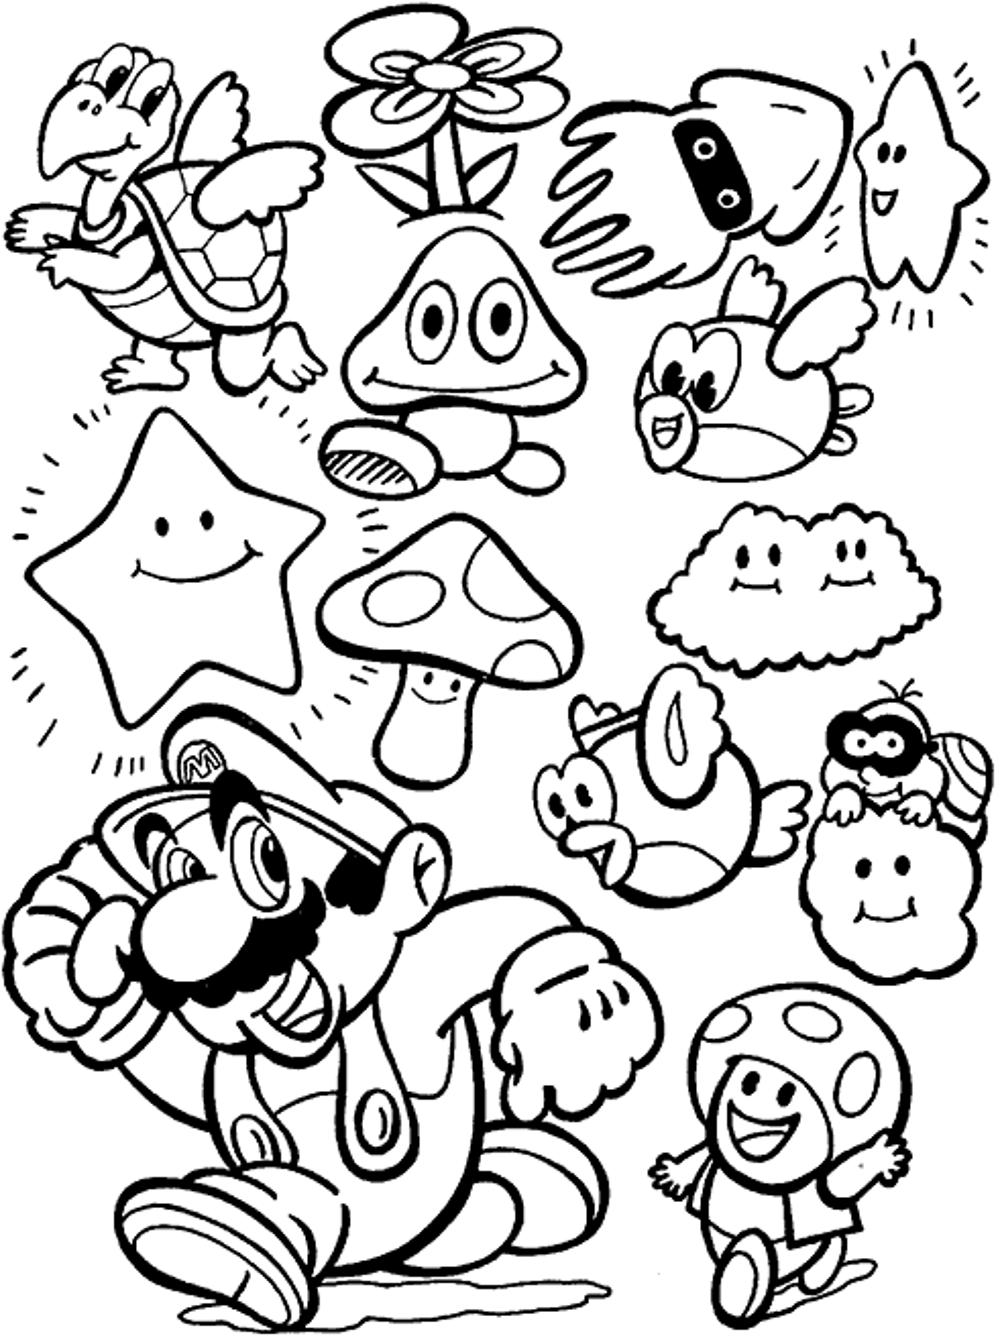 1000x1340 Startling Super Mario Bros Coloring Pages Free